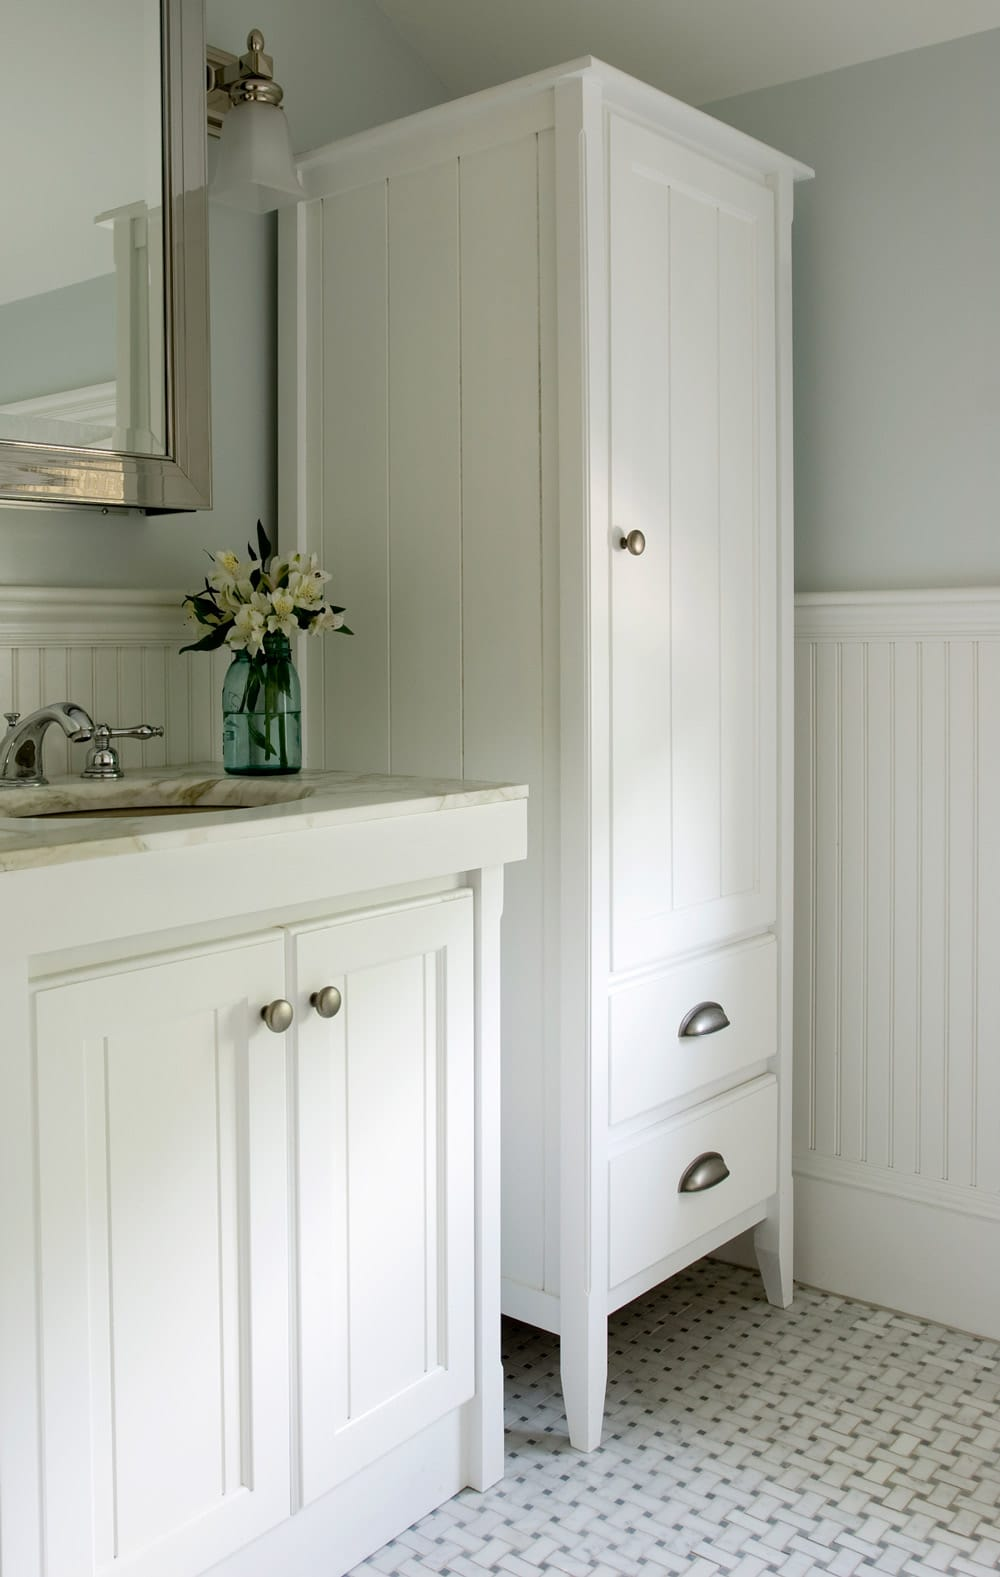 Bathroom-Storage-Furniture-celia-bedilia